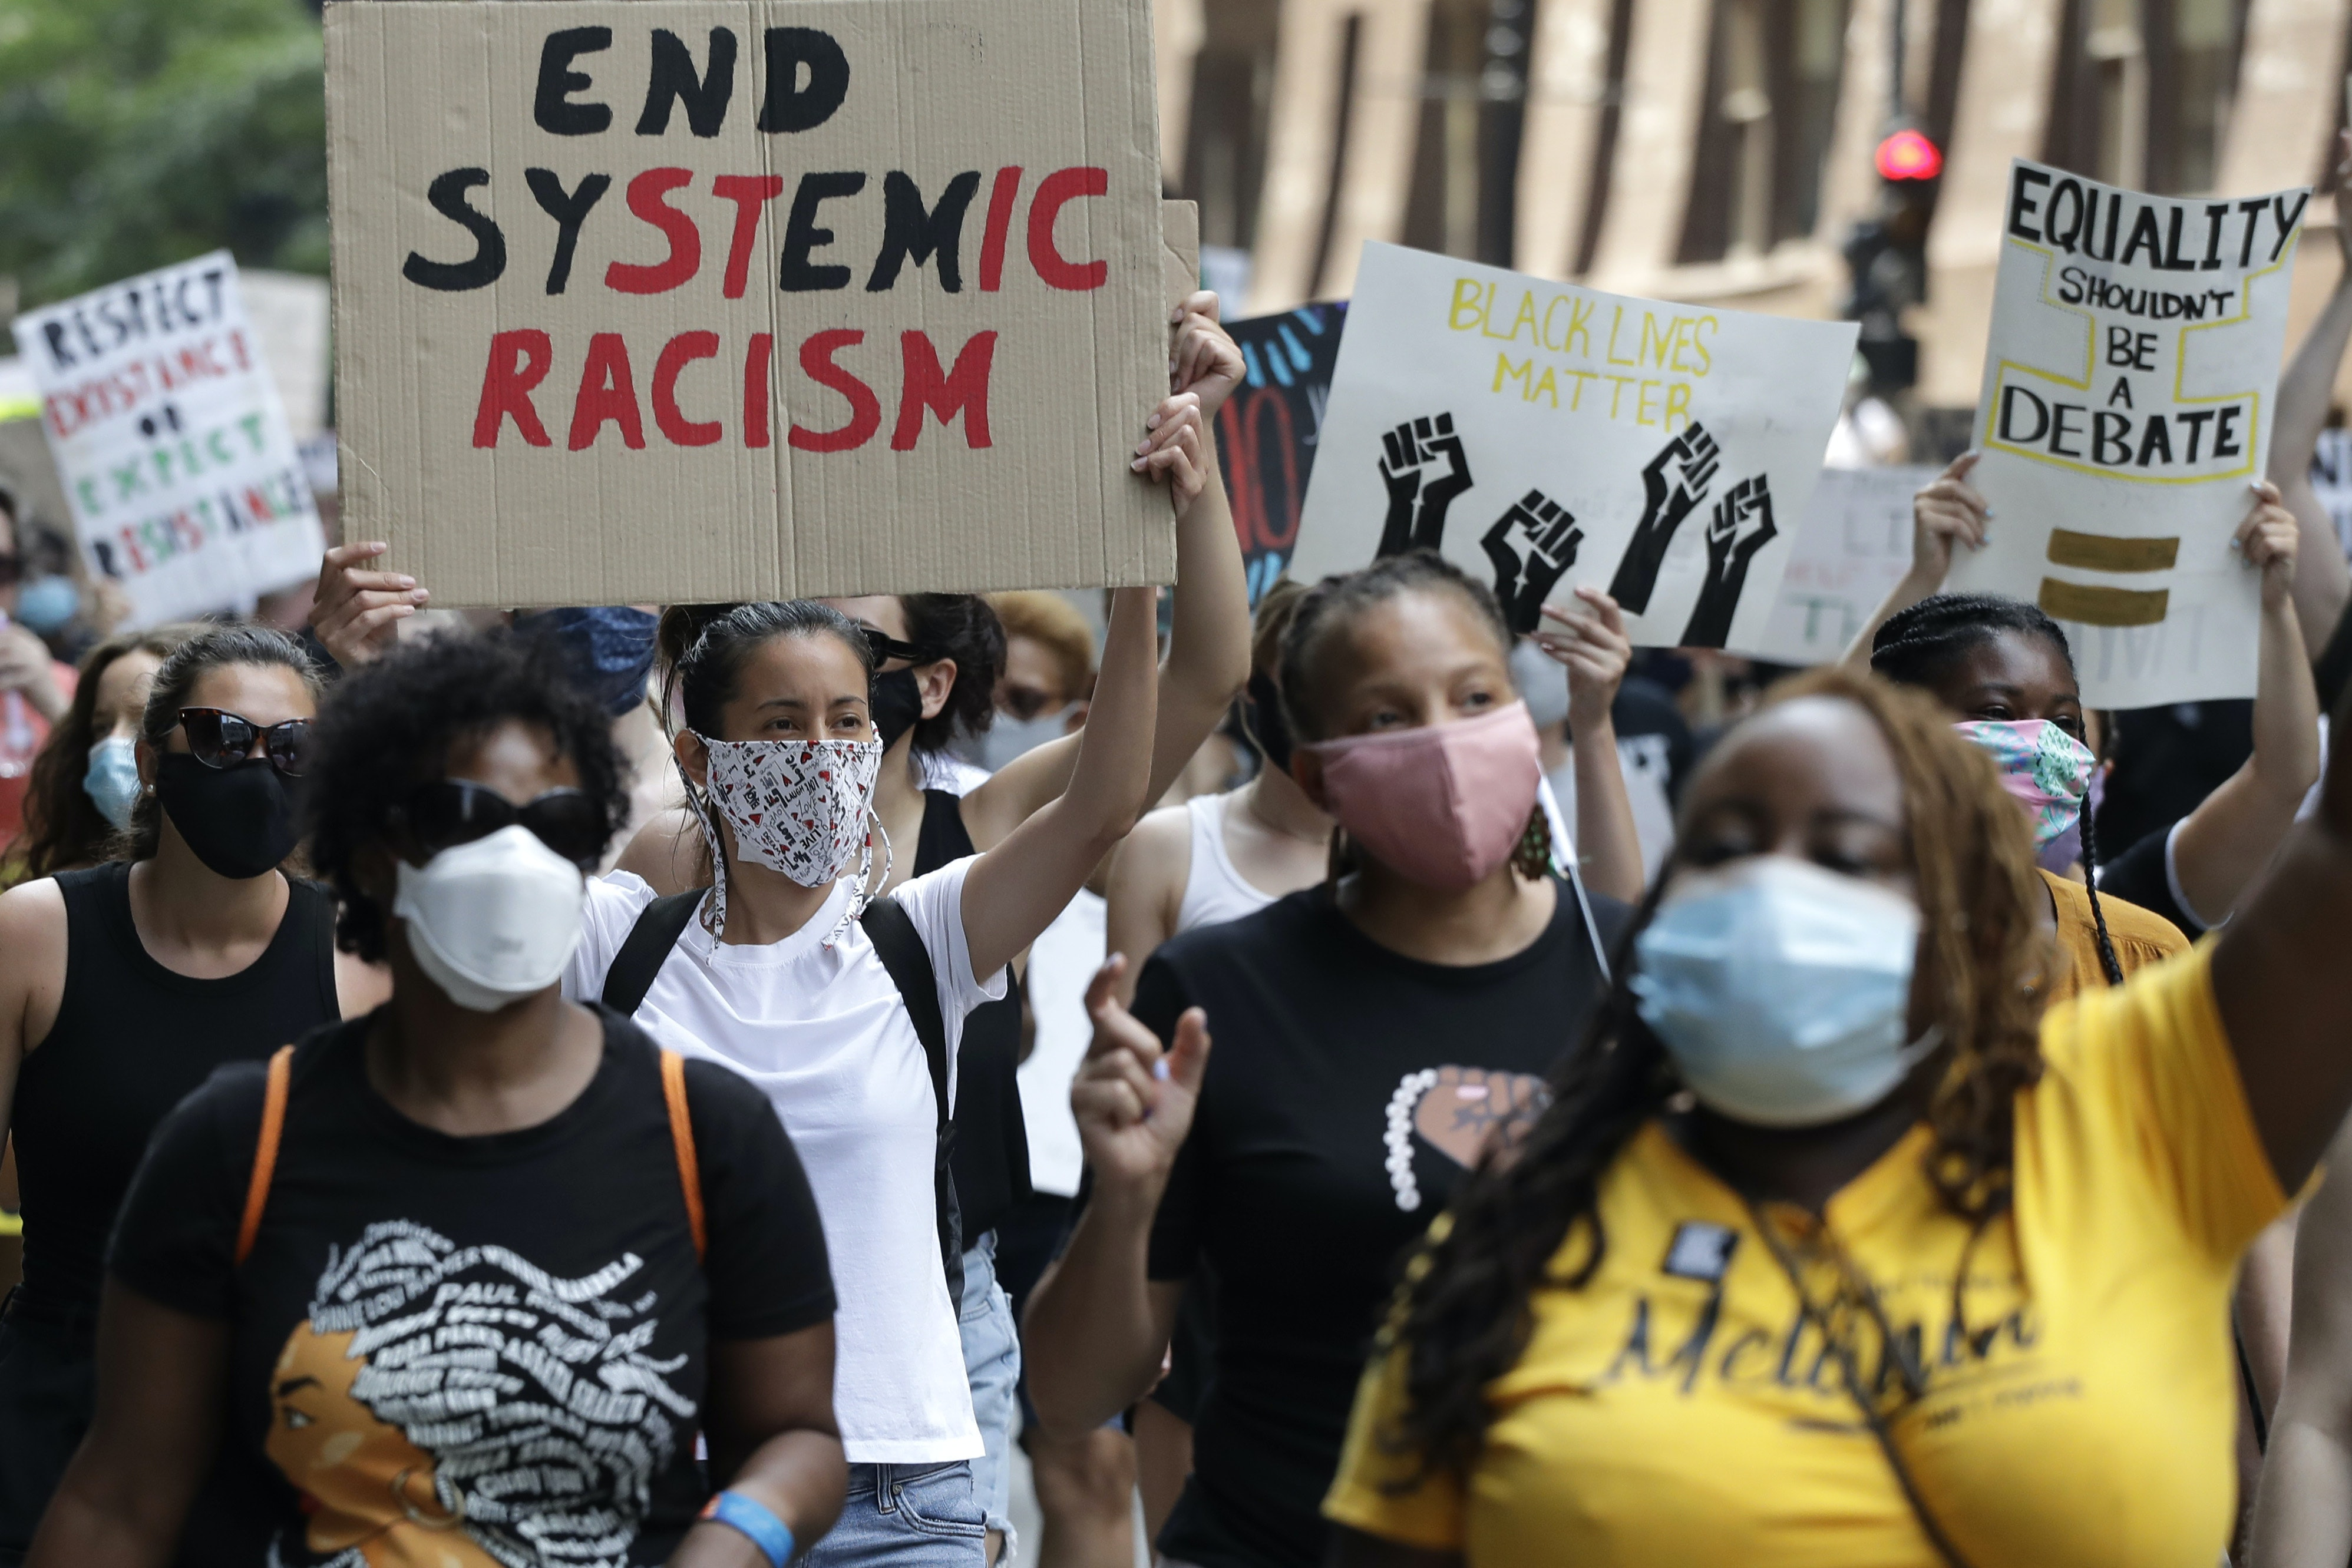 The phrase 'systemic racism' clouds productive debate